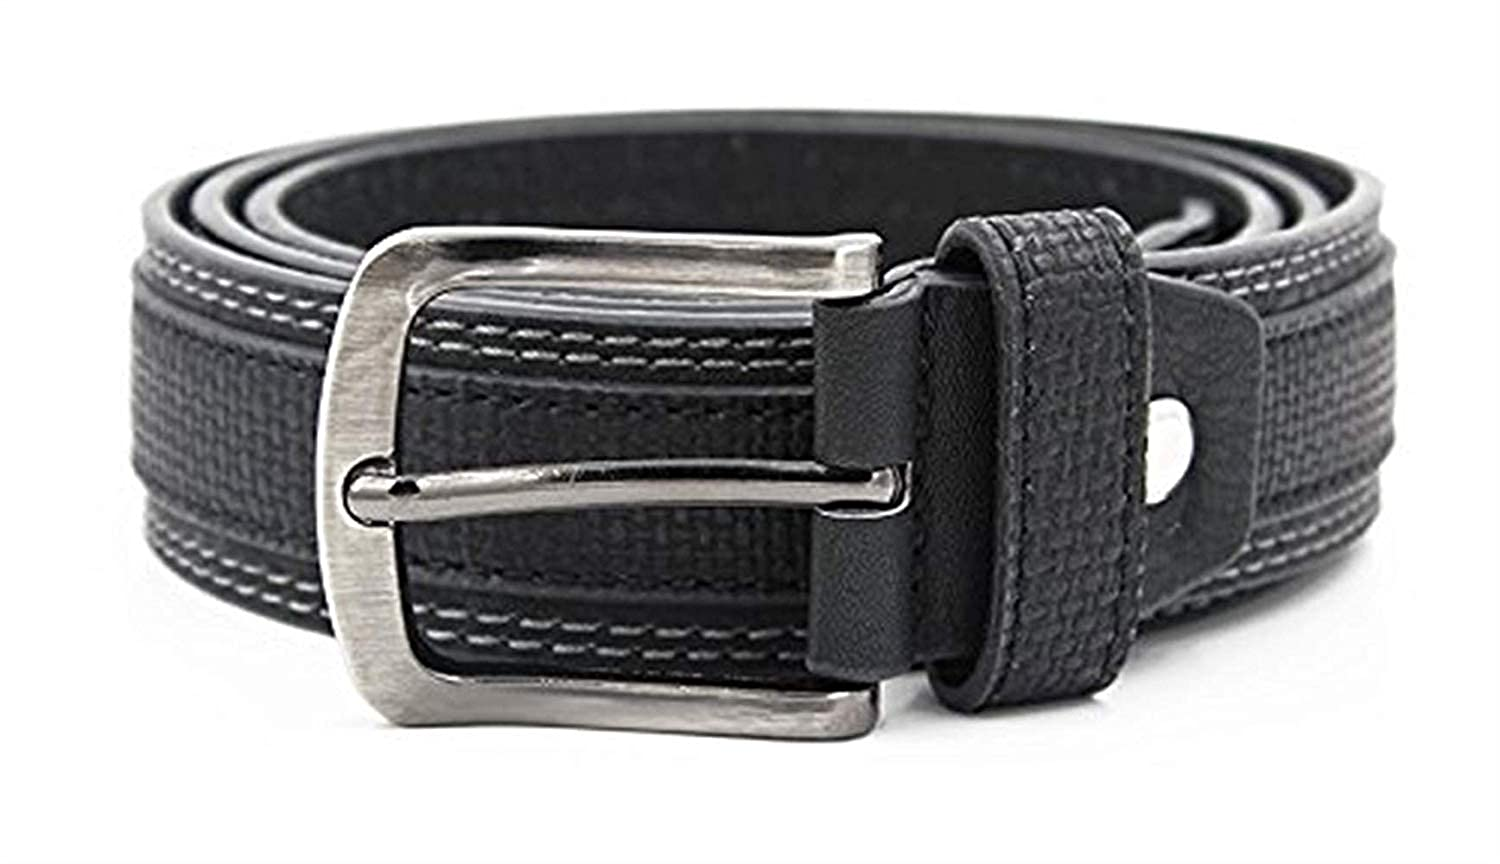 LVLUOYE Mens belt Leather Casual s For Leather S Xl Xs 2Xs 2Xl s